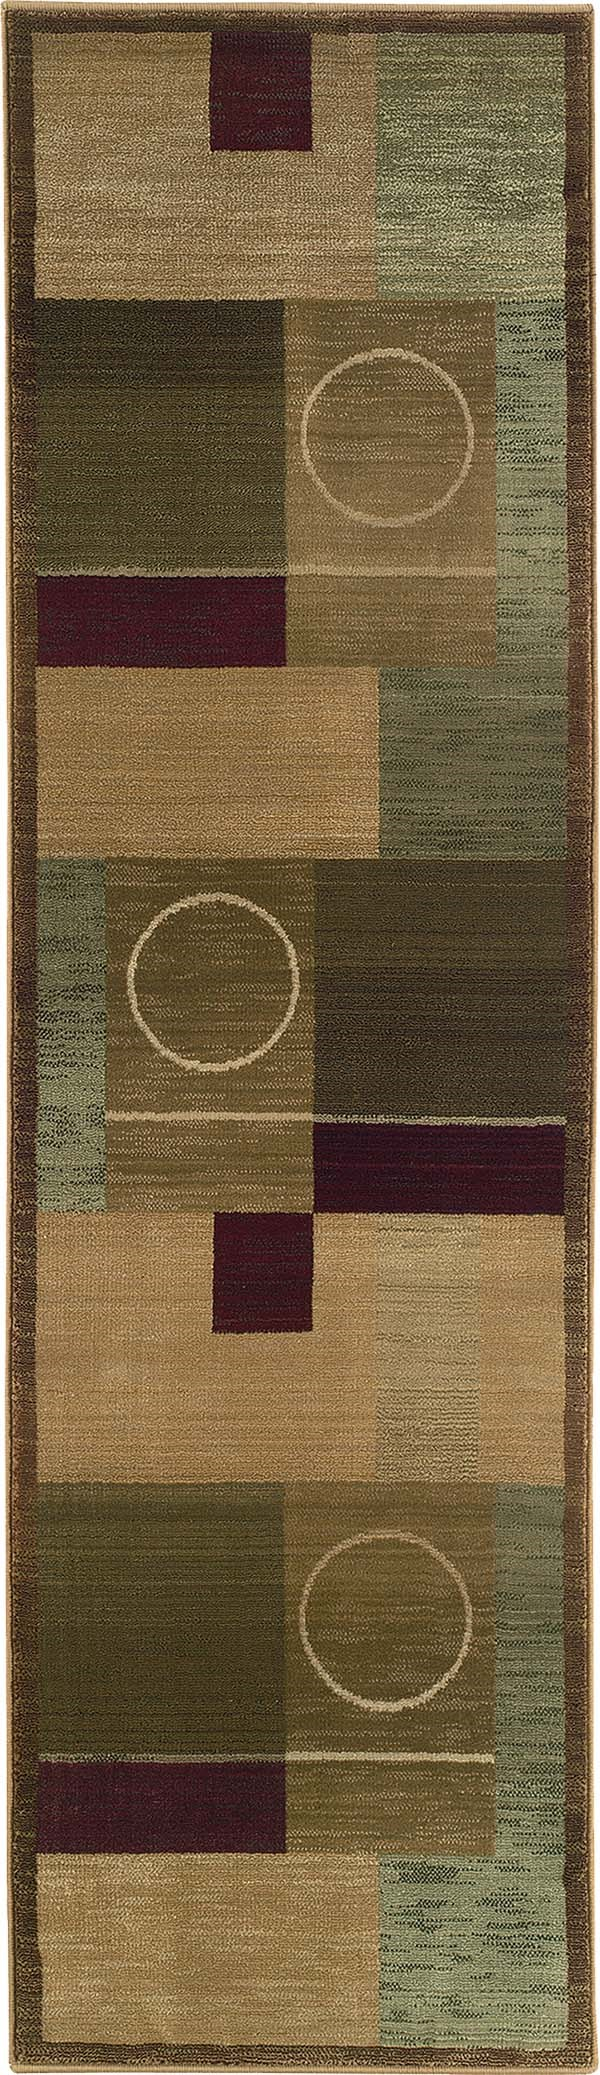 Green, Brown Contemporary / Modern Area Rug